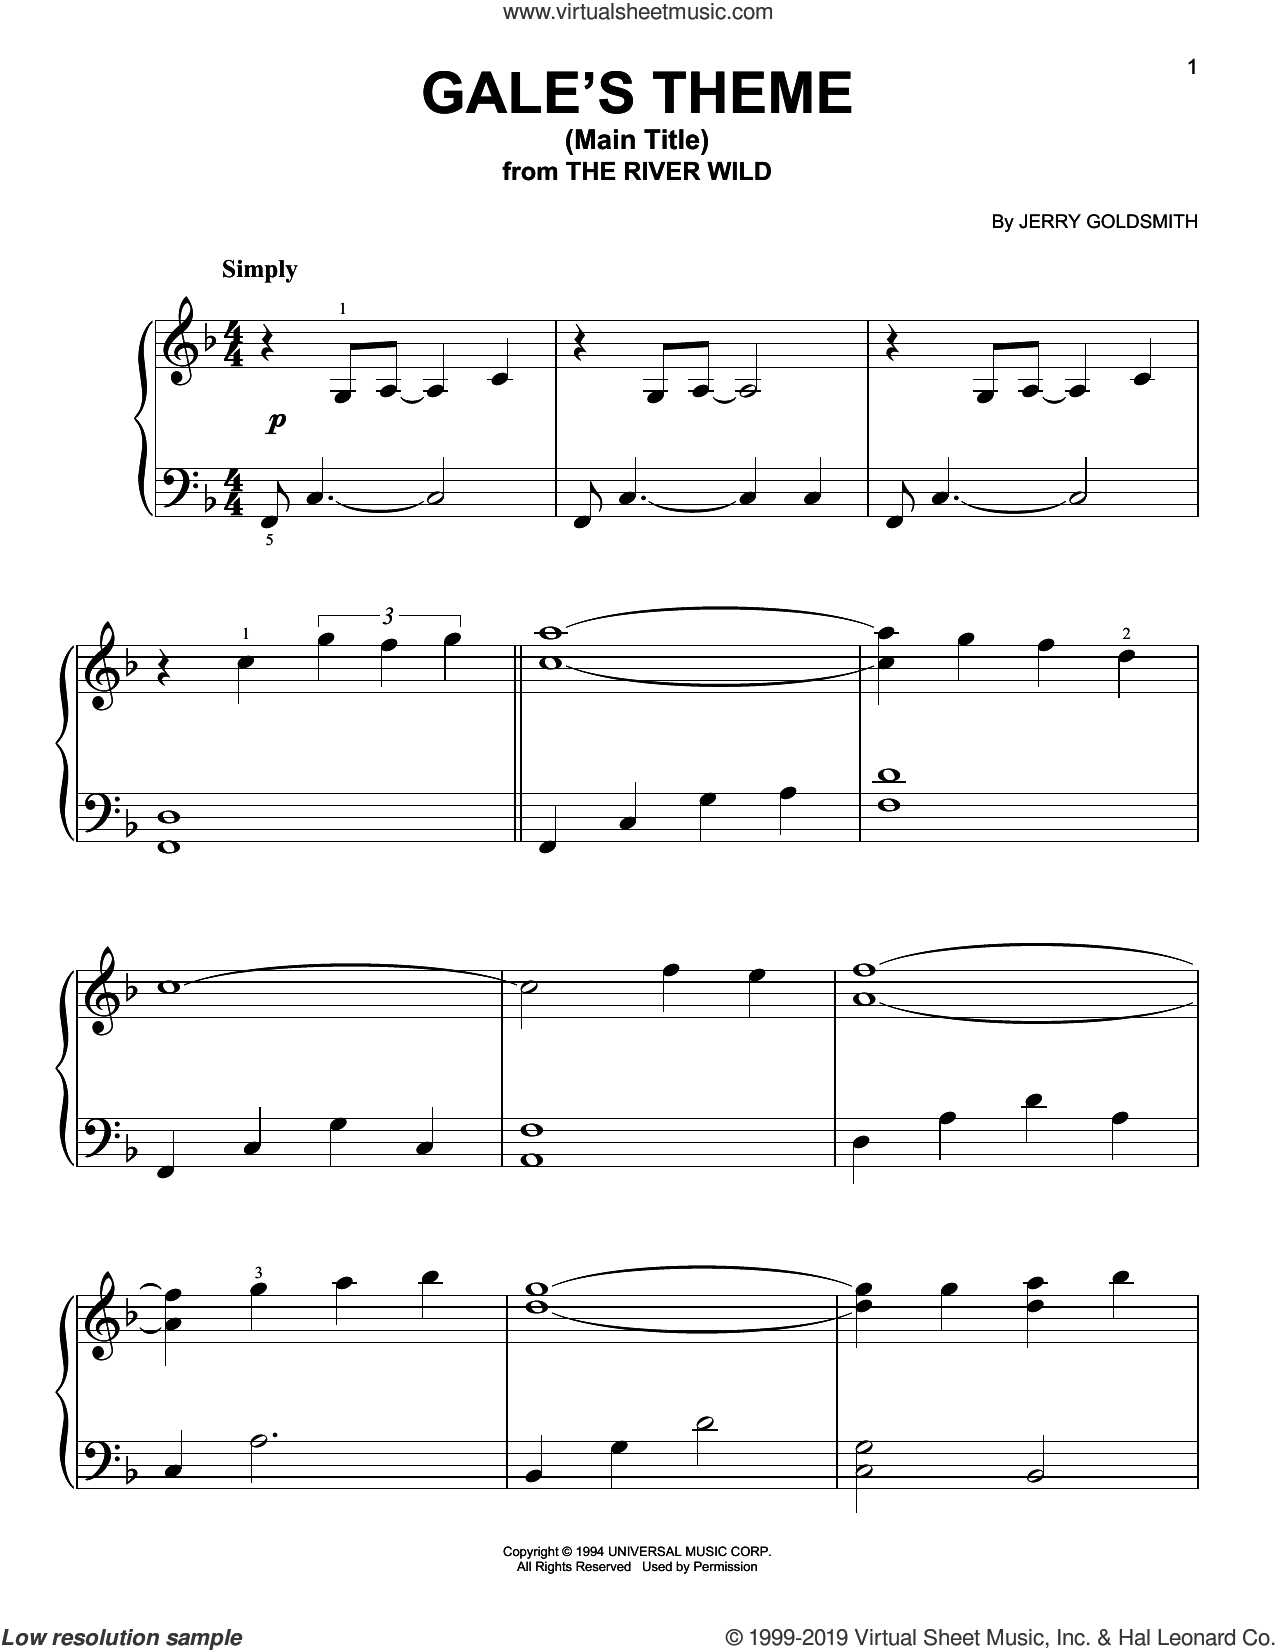 Gale's Theme (Main Title) sheet music for piano solo by Jerry Goldsmith, easy skill level